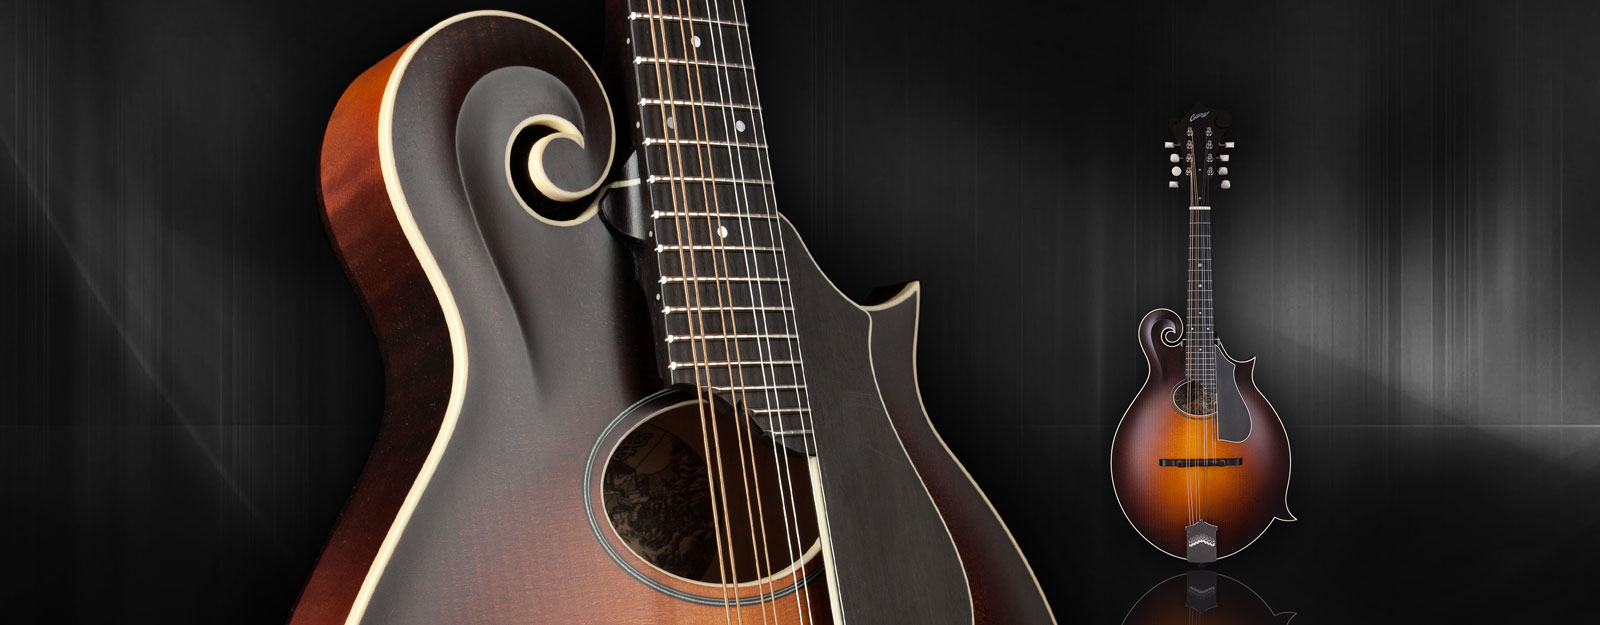 Collings MF O